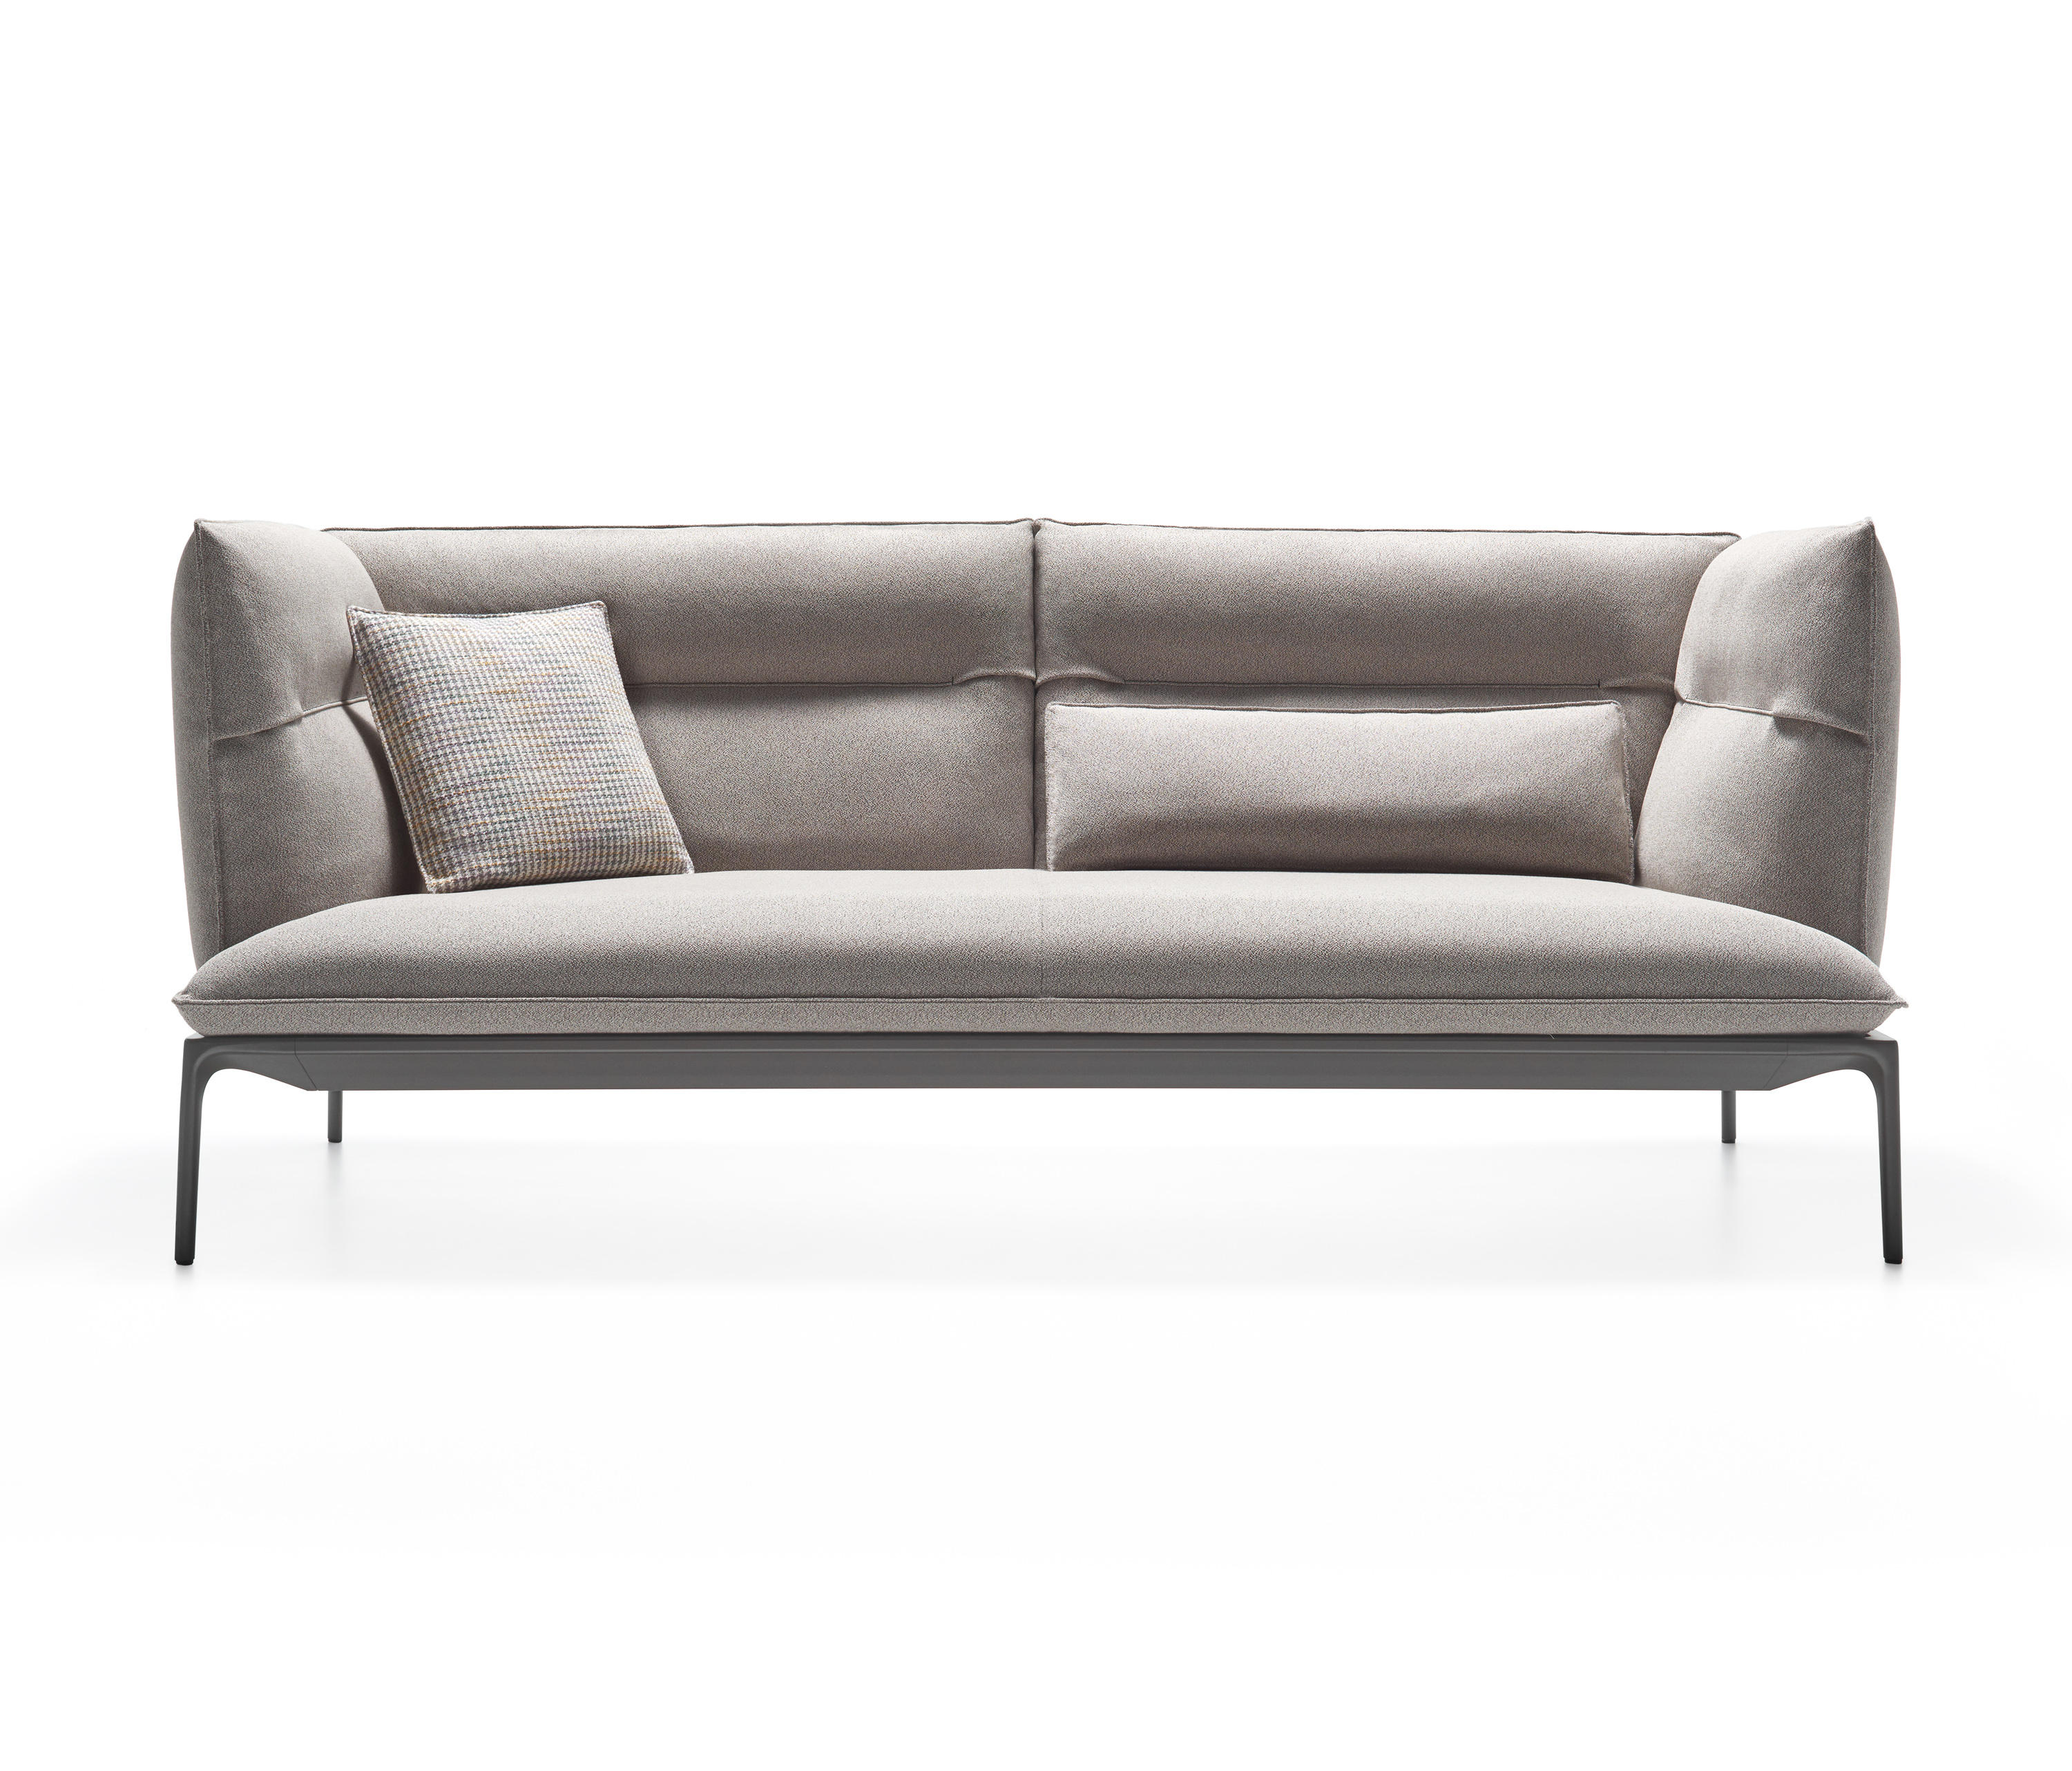 YALE X SOFA - Sofas from MDF Italia | Architonic